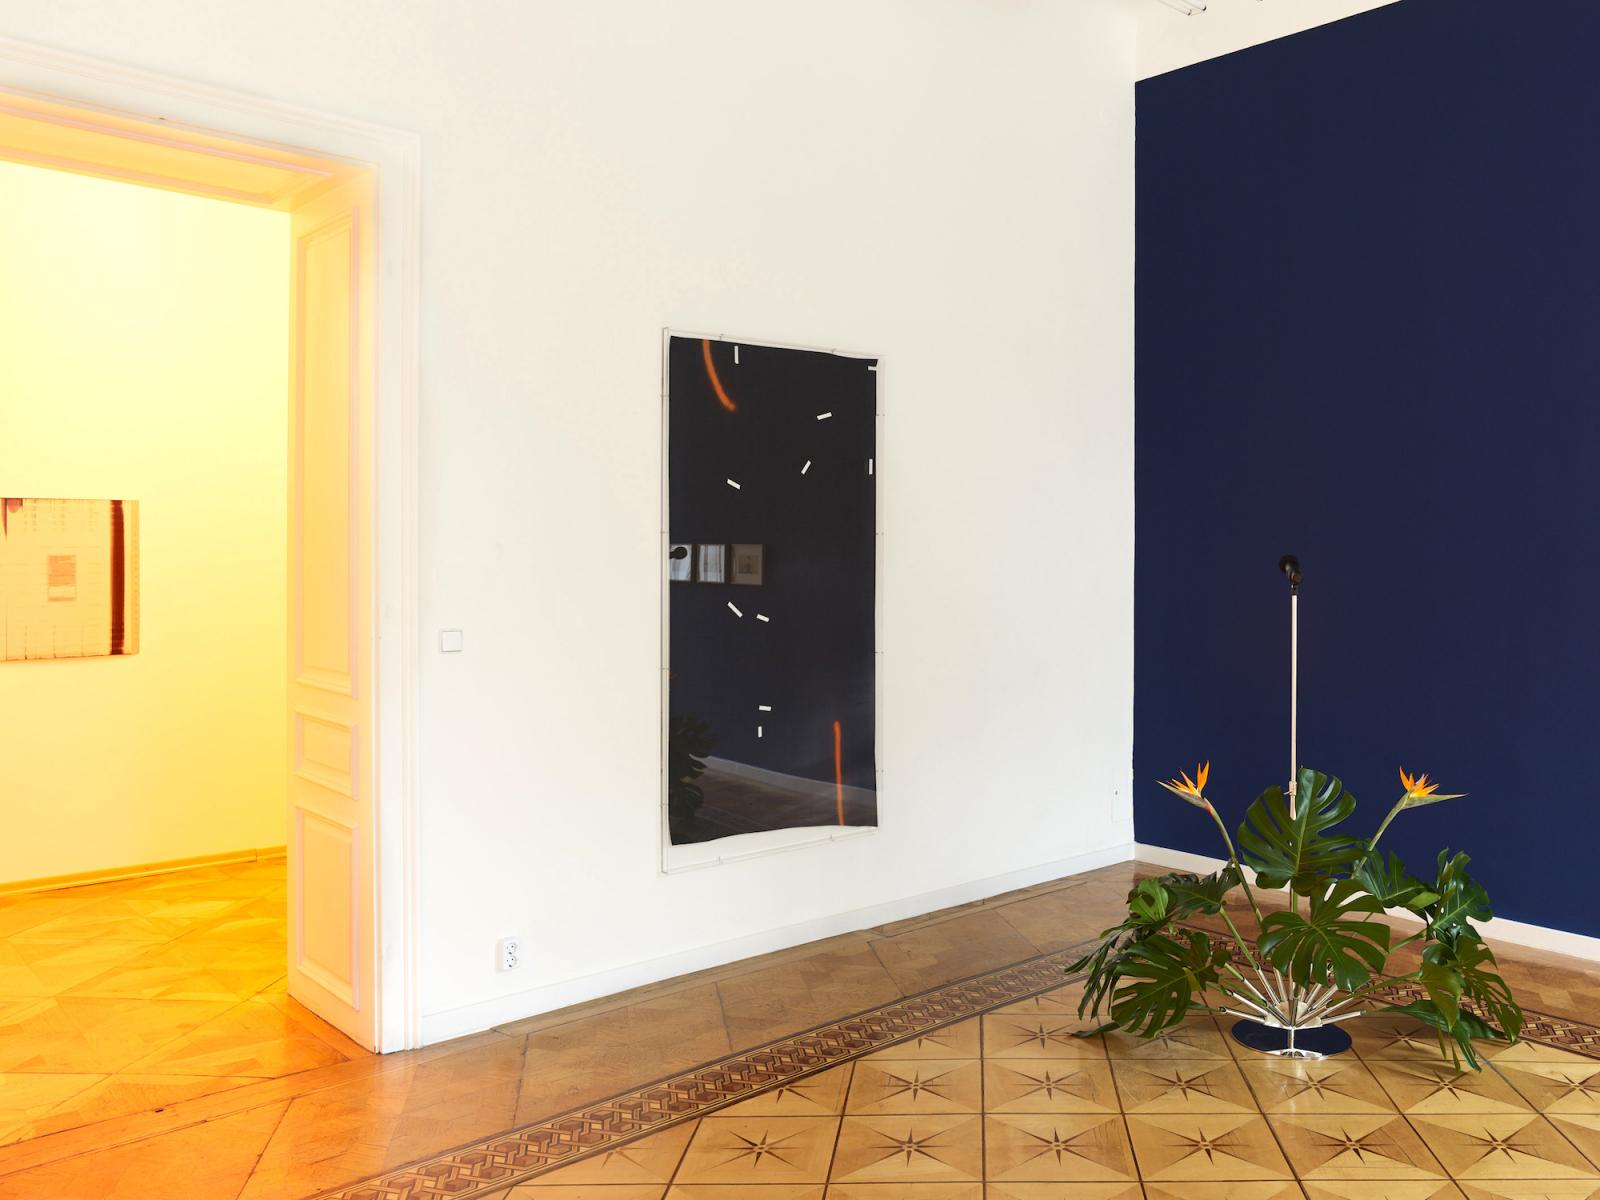 "Left to right: Studio for Propositional Cinema, Mandla Reuter, Irena Haiduk Photo: Pascal Petignat; Courtesy Croy Nielsen, Vienna  ""The Forecast"" curated by Laura Maclean-Ferris, Croy Nielsen"